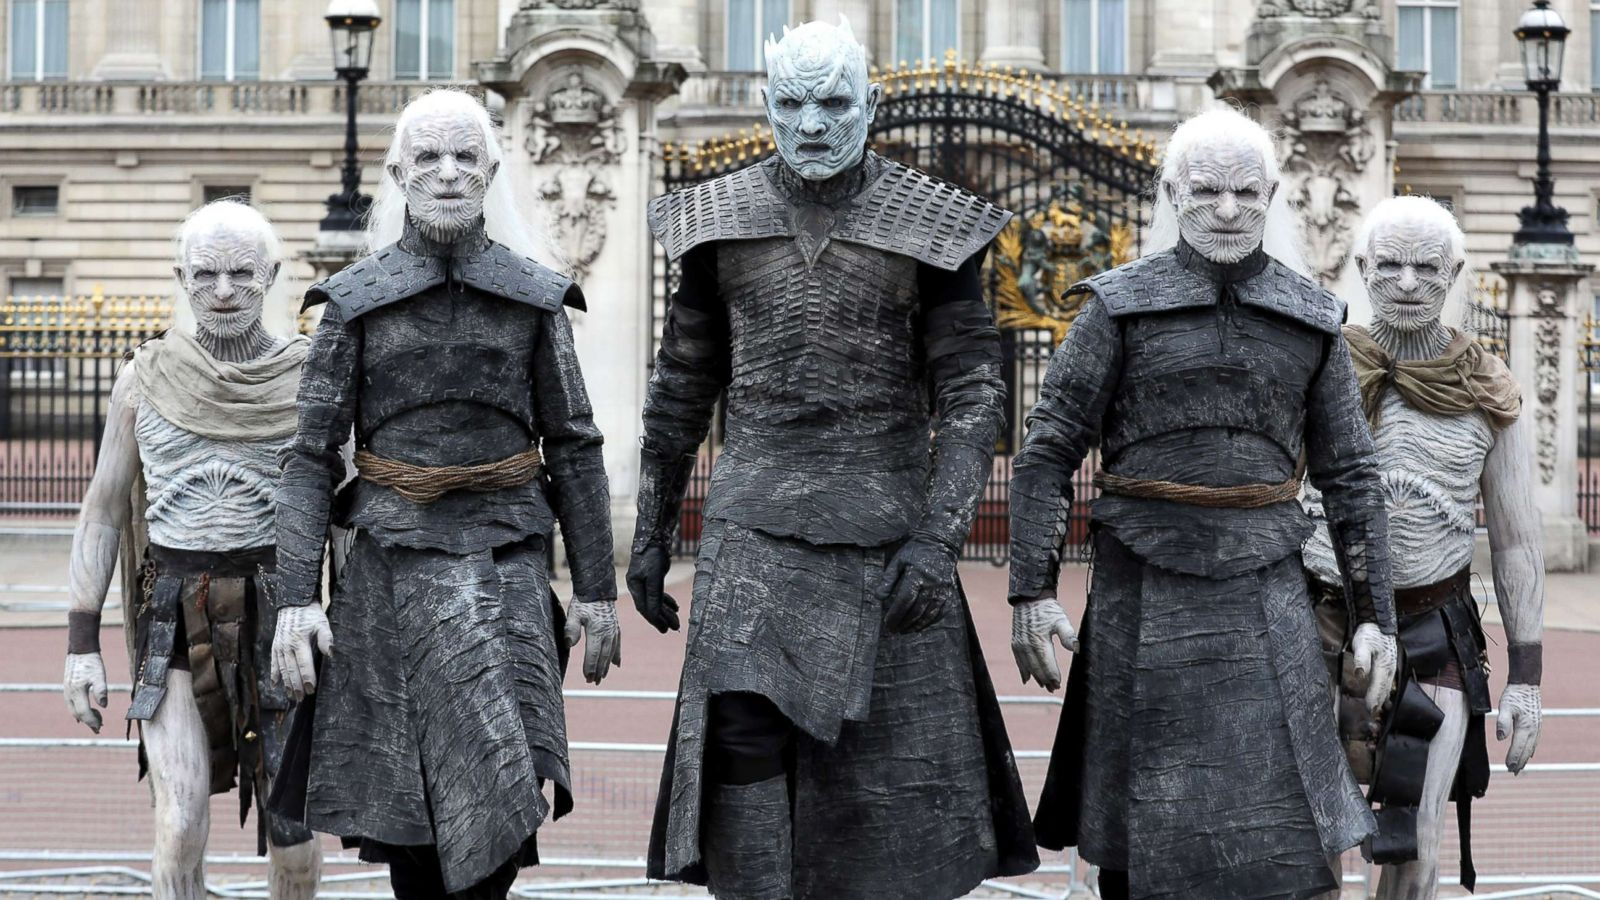 Game Of Thrones White Walkers Take Over London In Advance Of